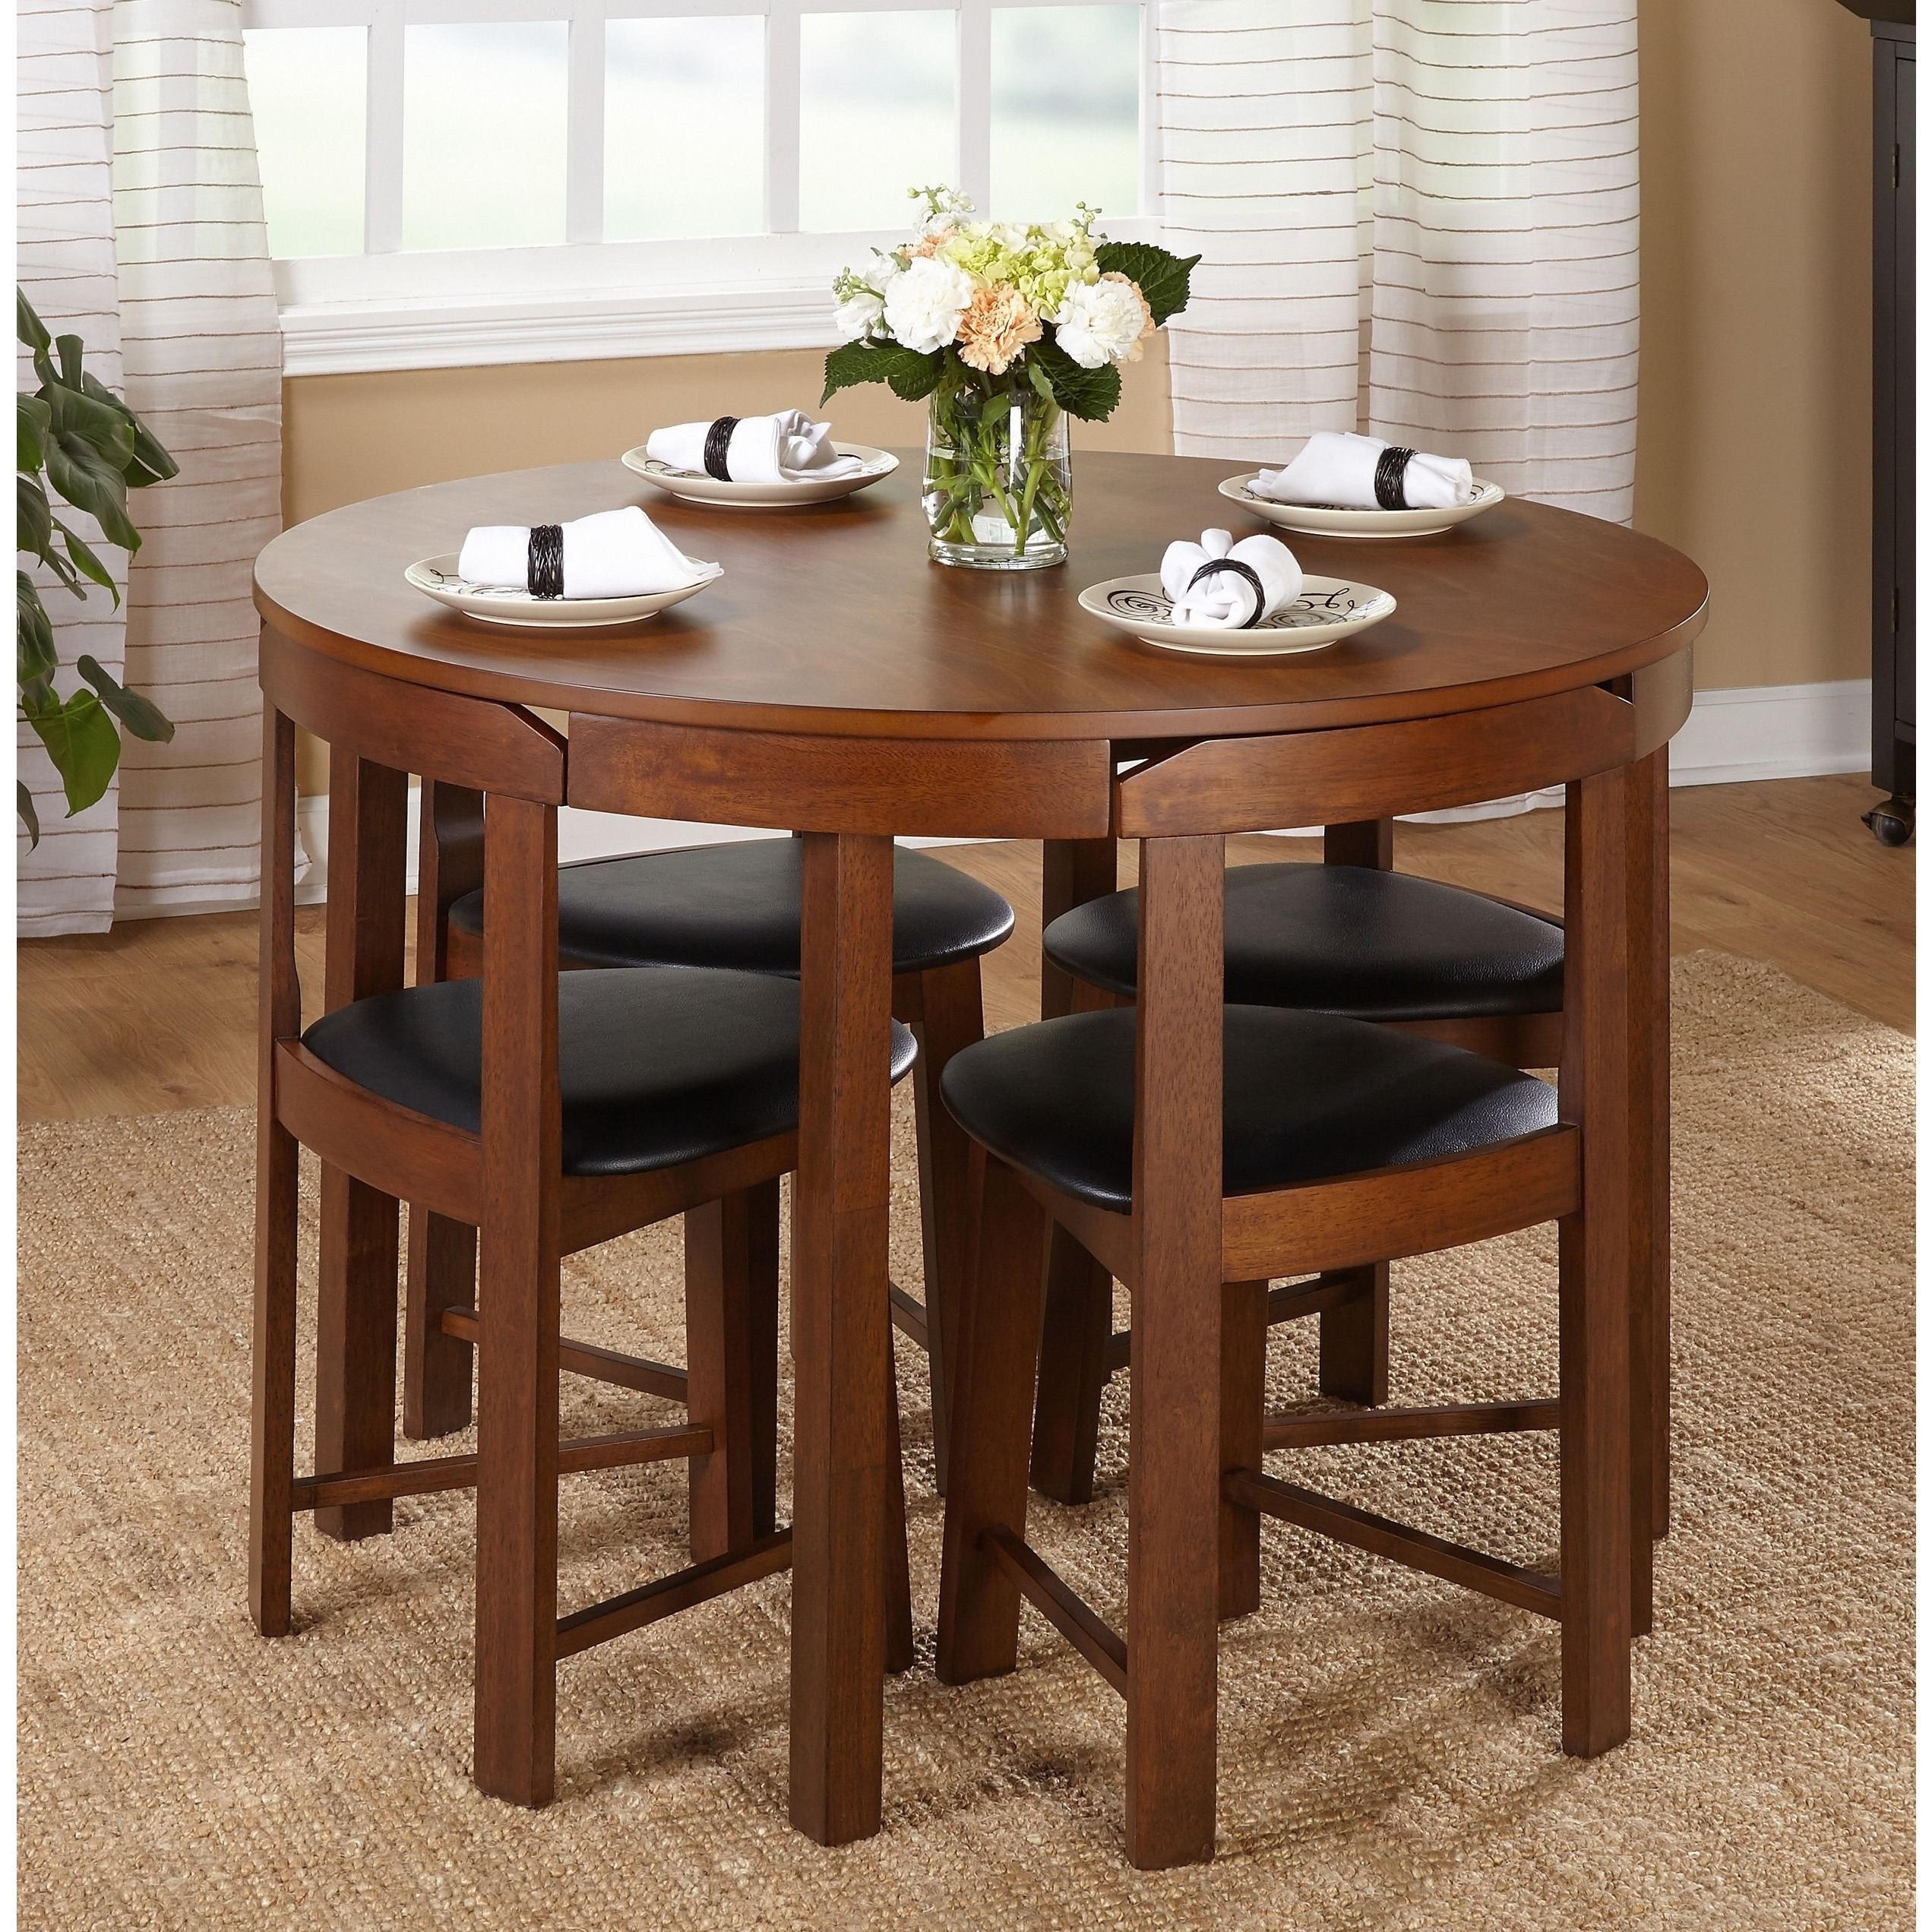 Fashionable The 5 Piece Tobey Compact Dining Setsimple Living Offers Four Throughout Small Dining Sets (View 10 of 25)